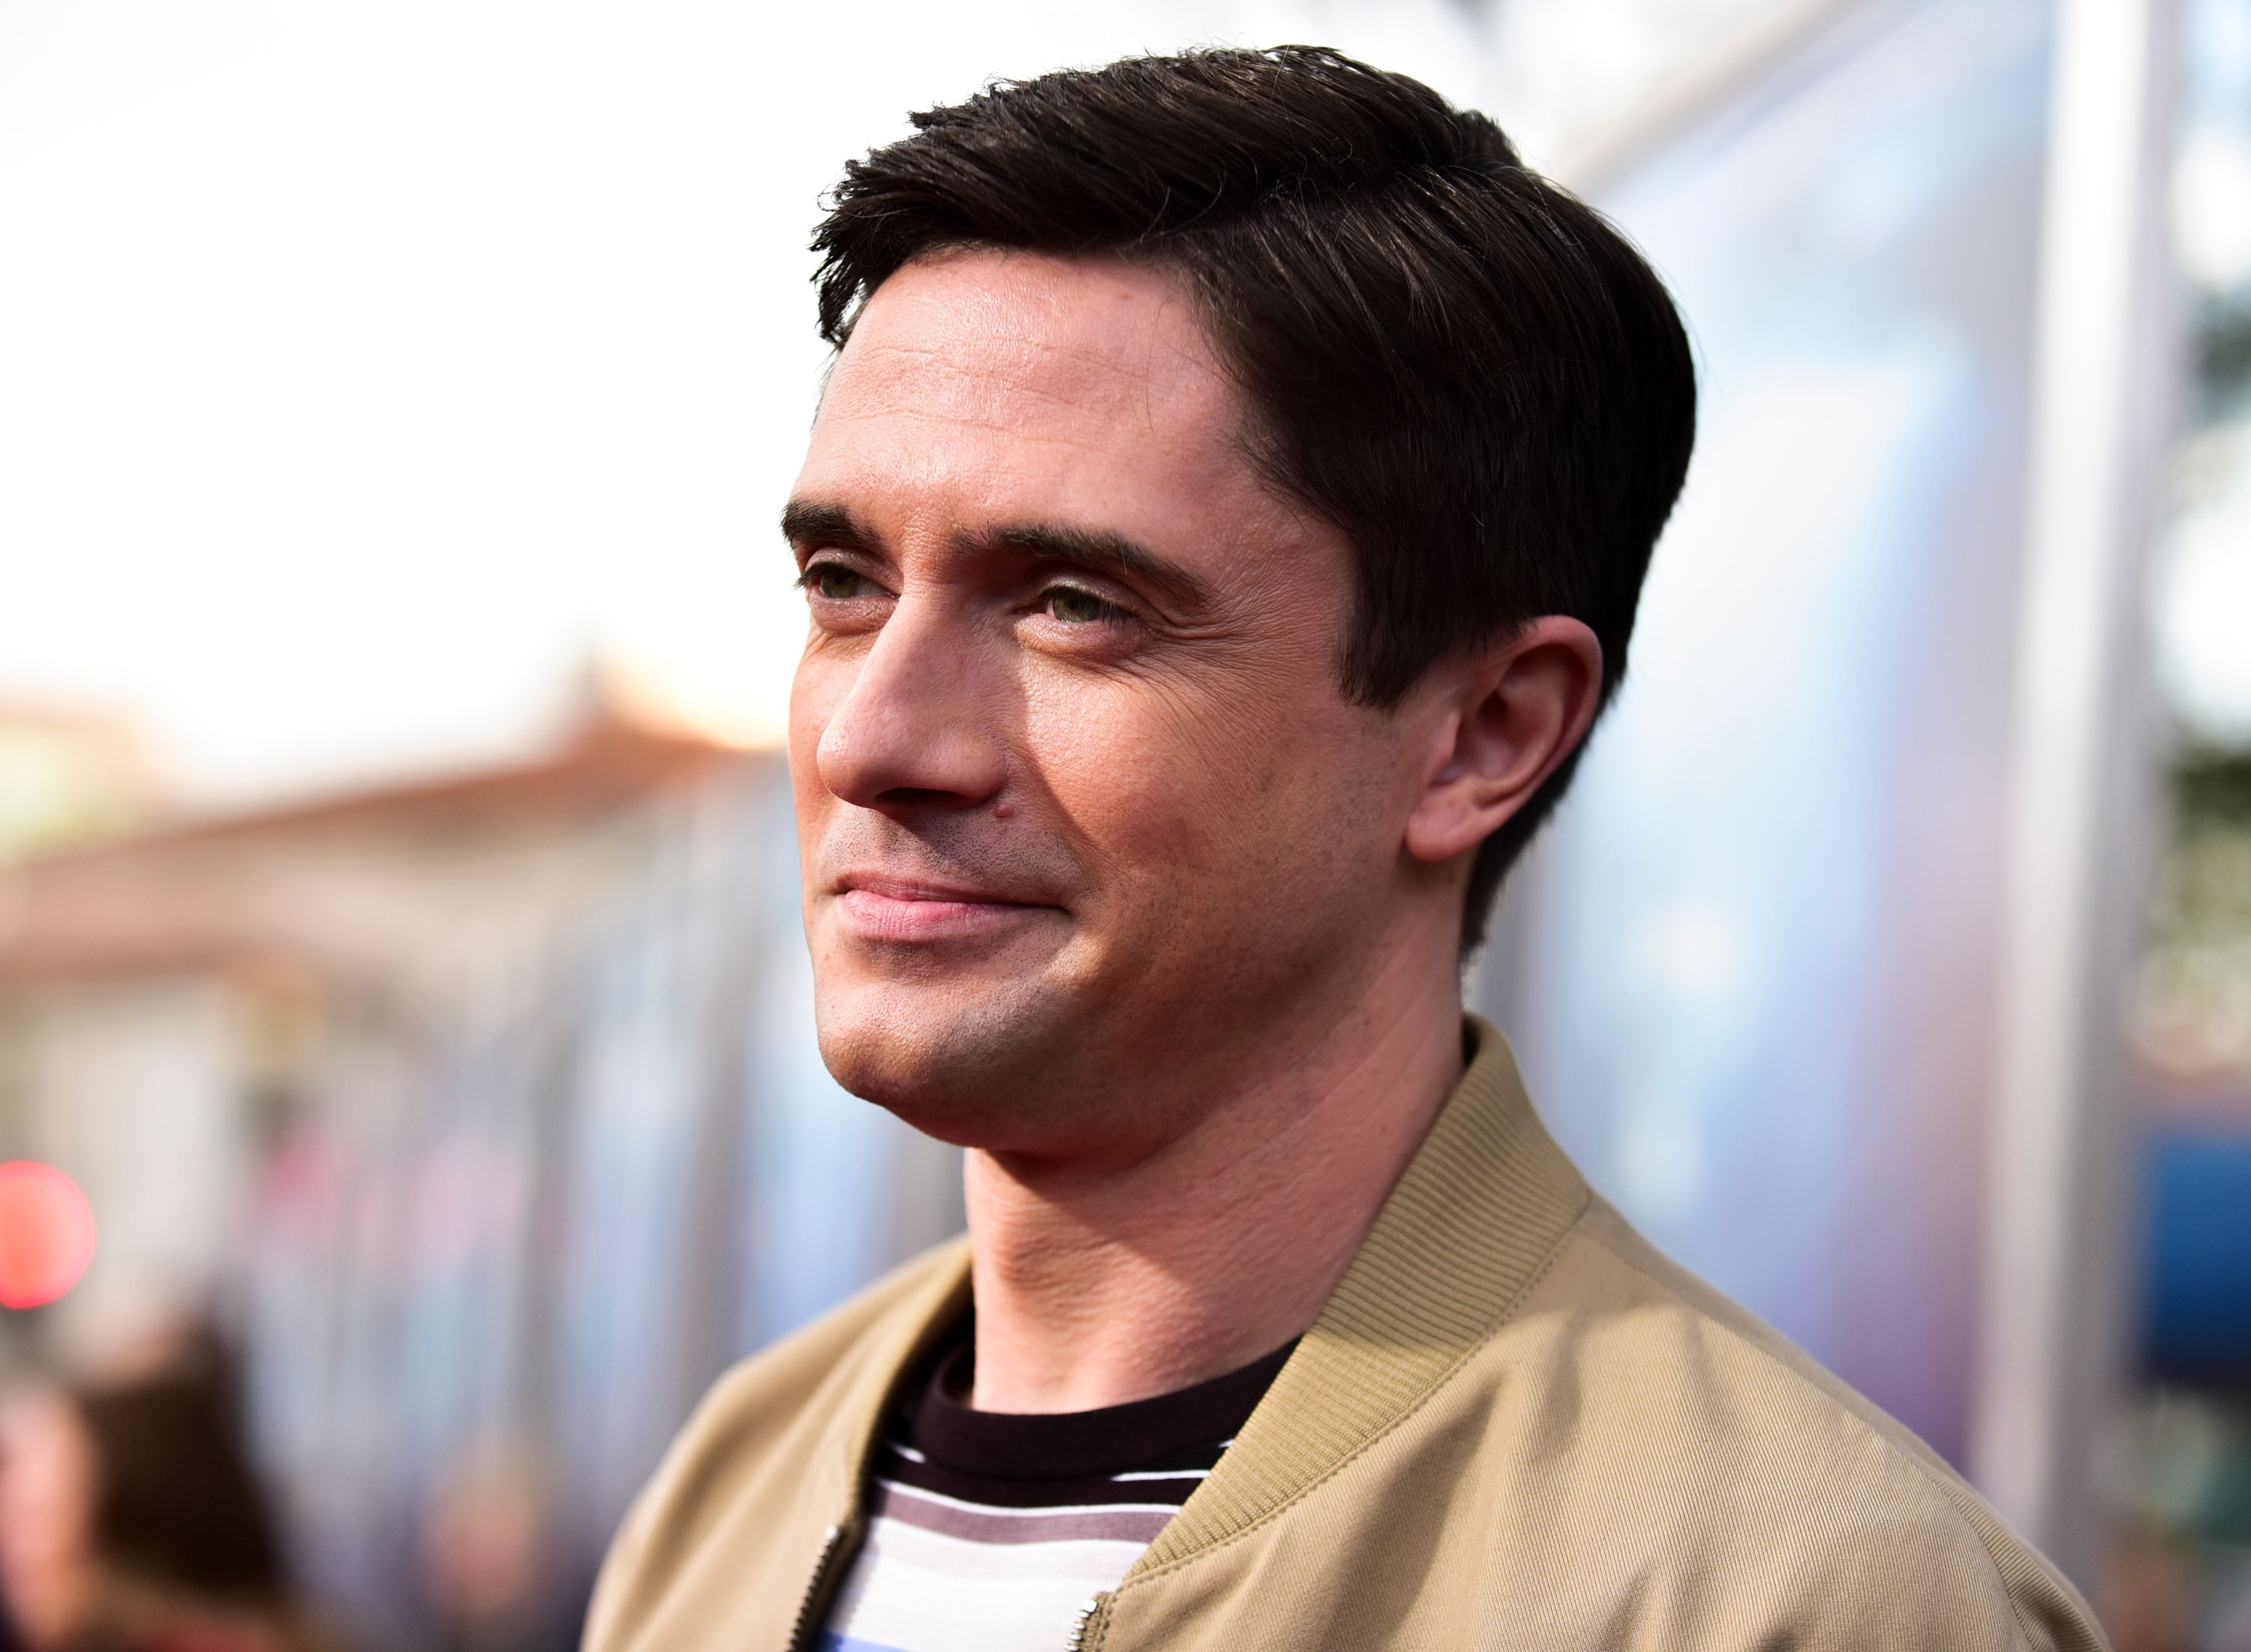 """Topher Grace attends the premiere of 20th Century Fox's """"Breakthrough"""" at Westwood Regency Theater on April 11, 2019 in Los Angeles, California. 